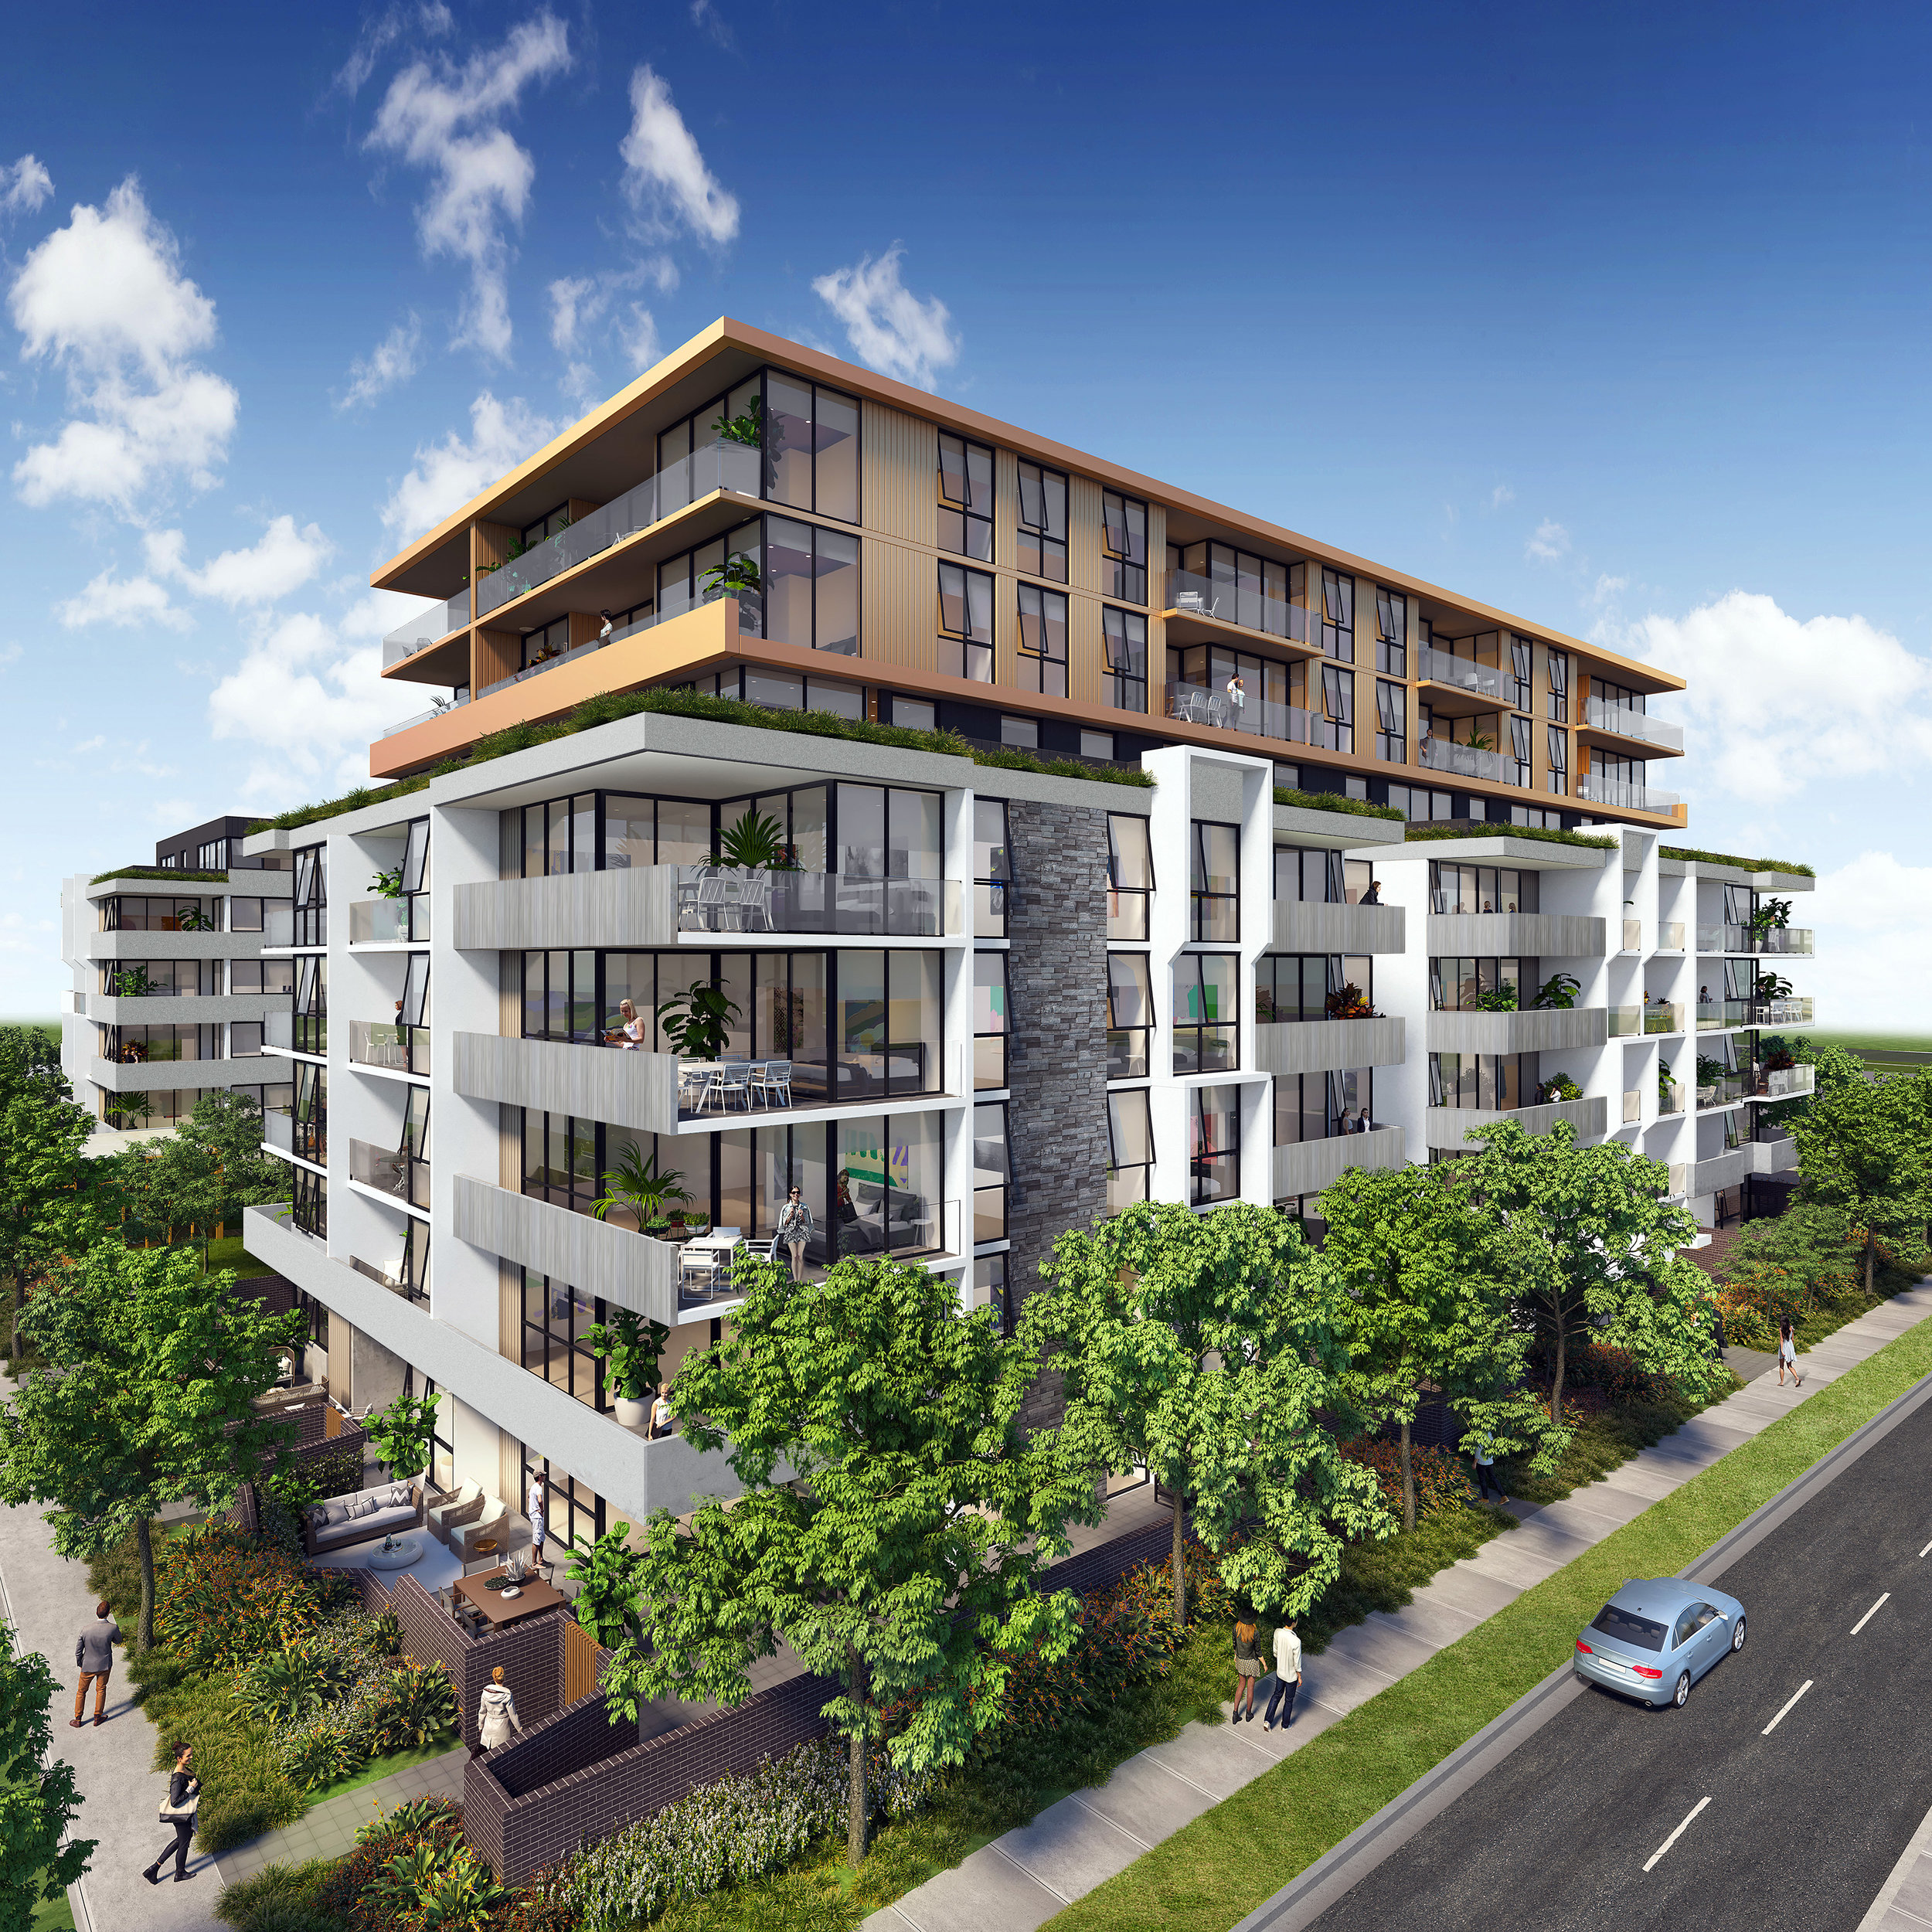 Pagewood Green - Dahlia - Dahlia, the second stage release within the Pagewood Green master-planned community.